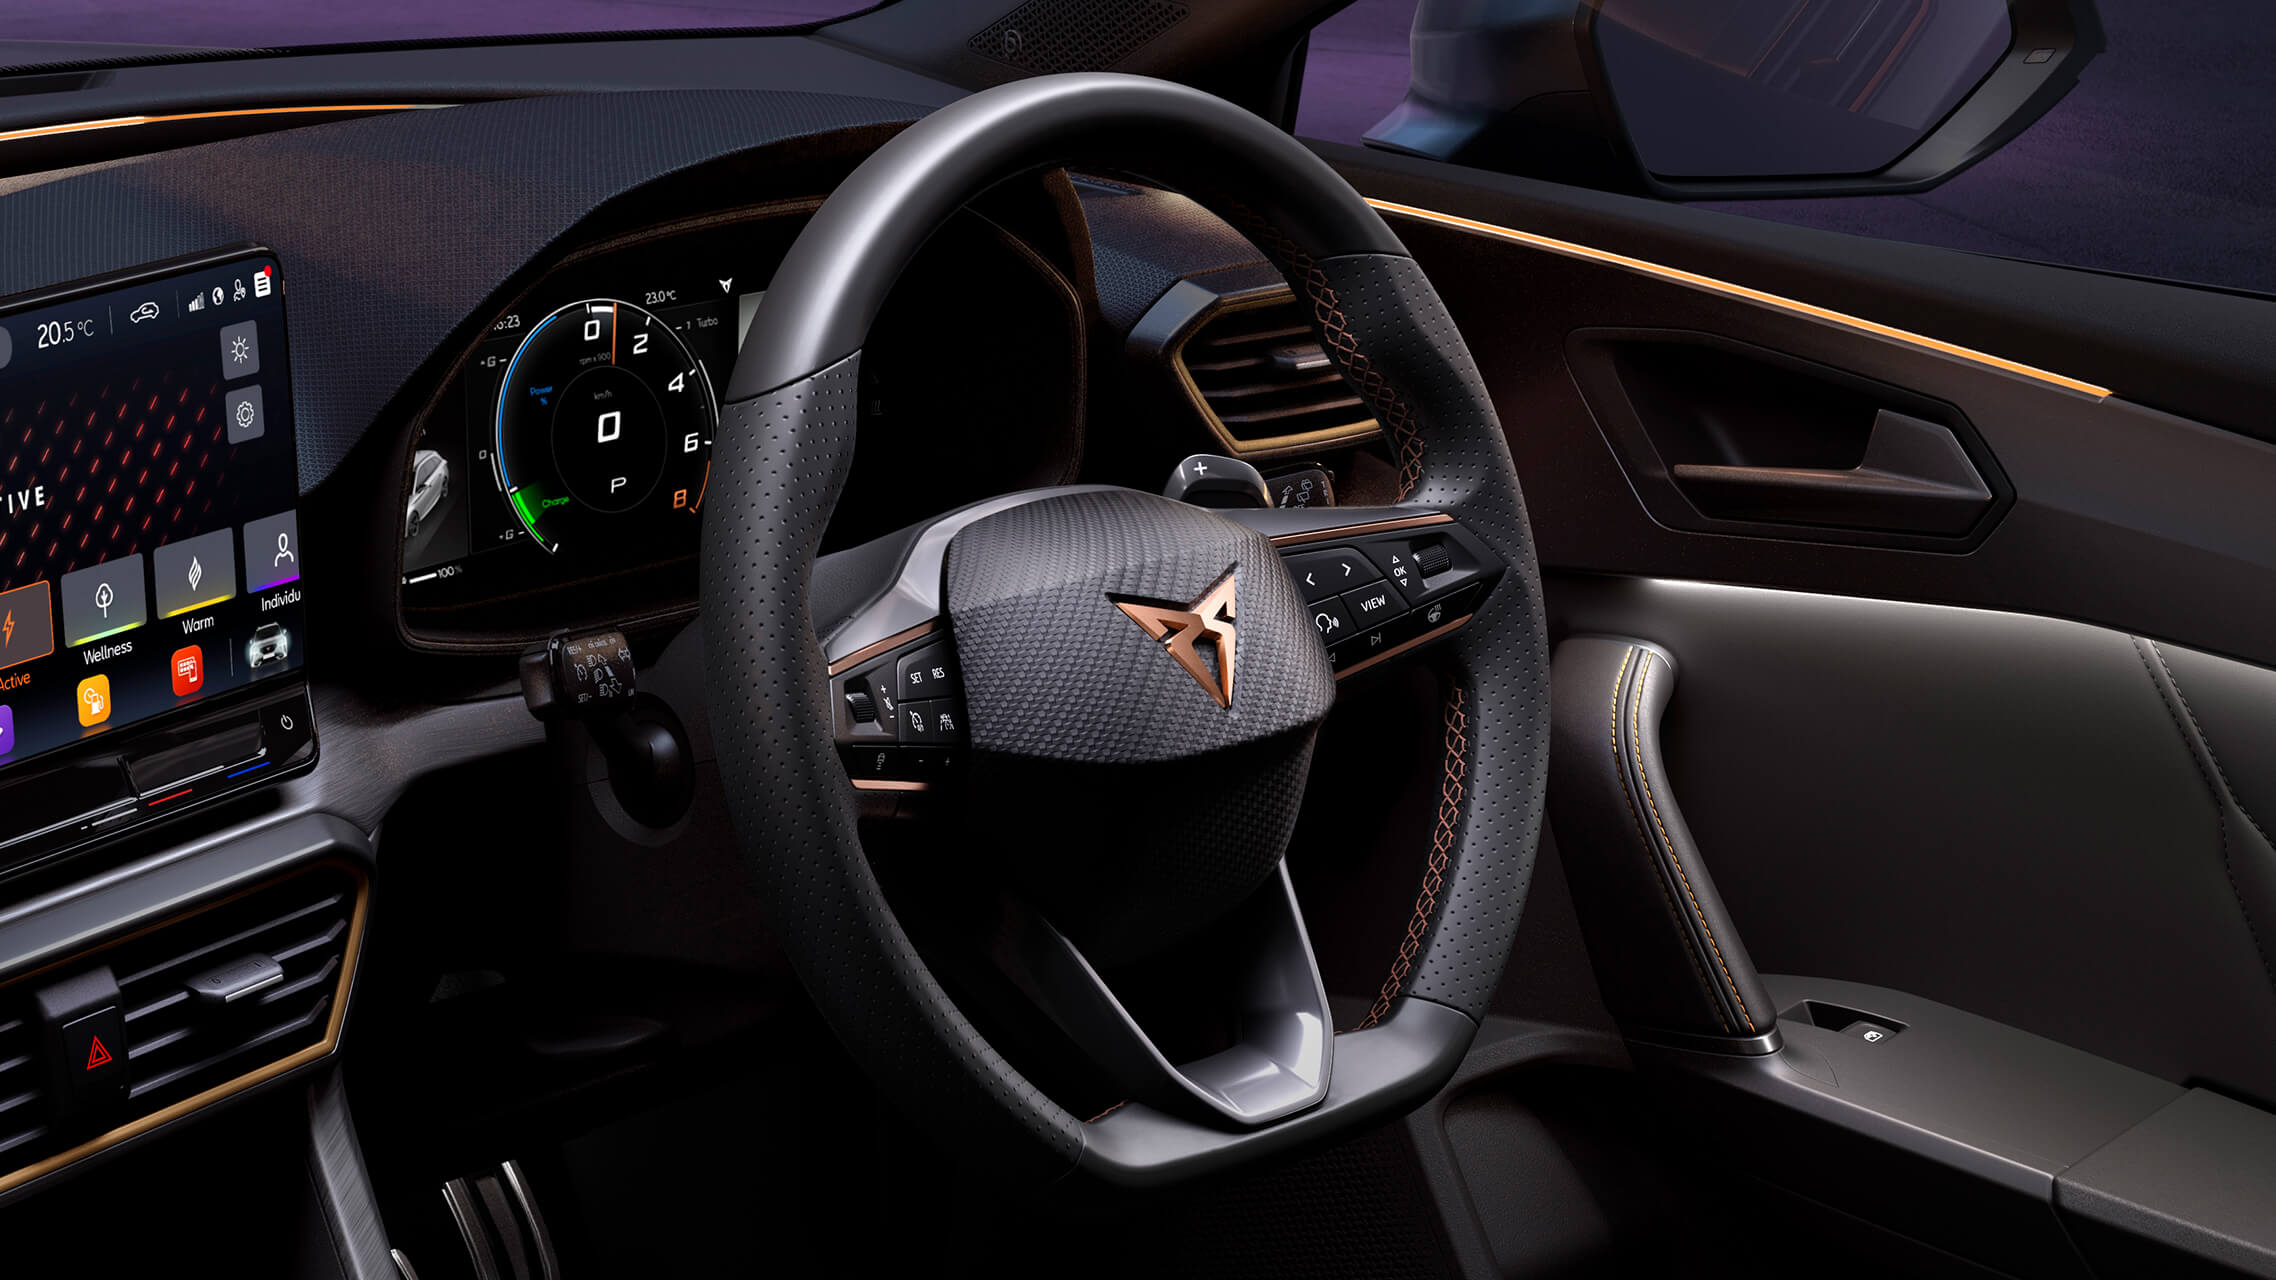 new CUPRA Leon Estate e-HYBRID Family Sports Car interior view leather steering wheel with driving profile mode button